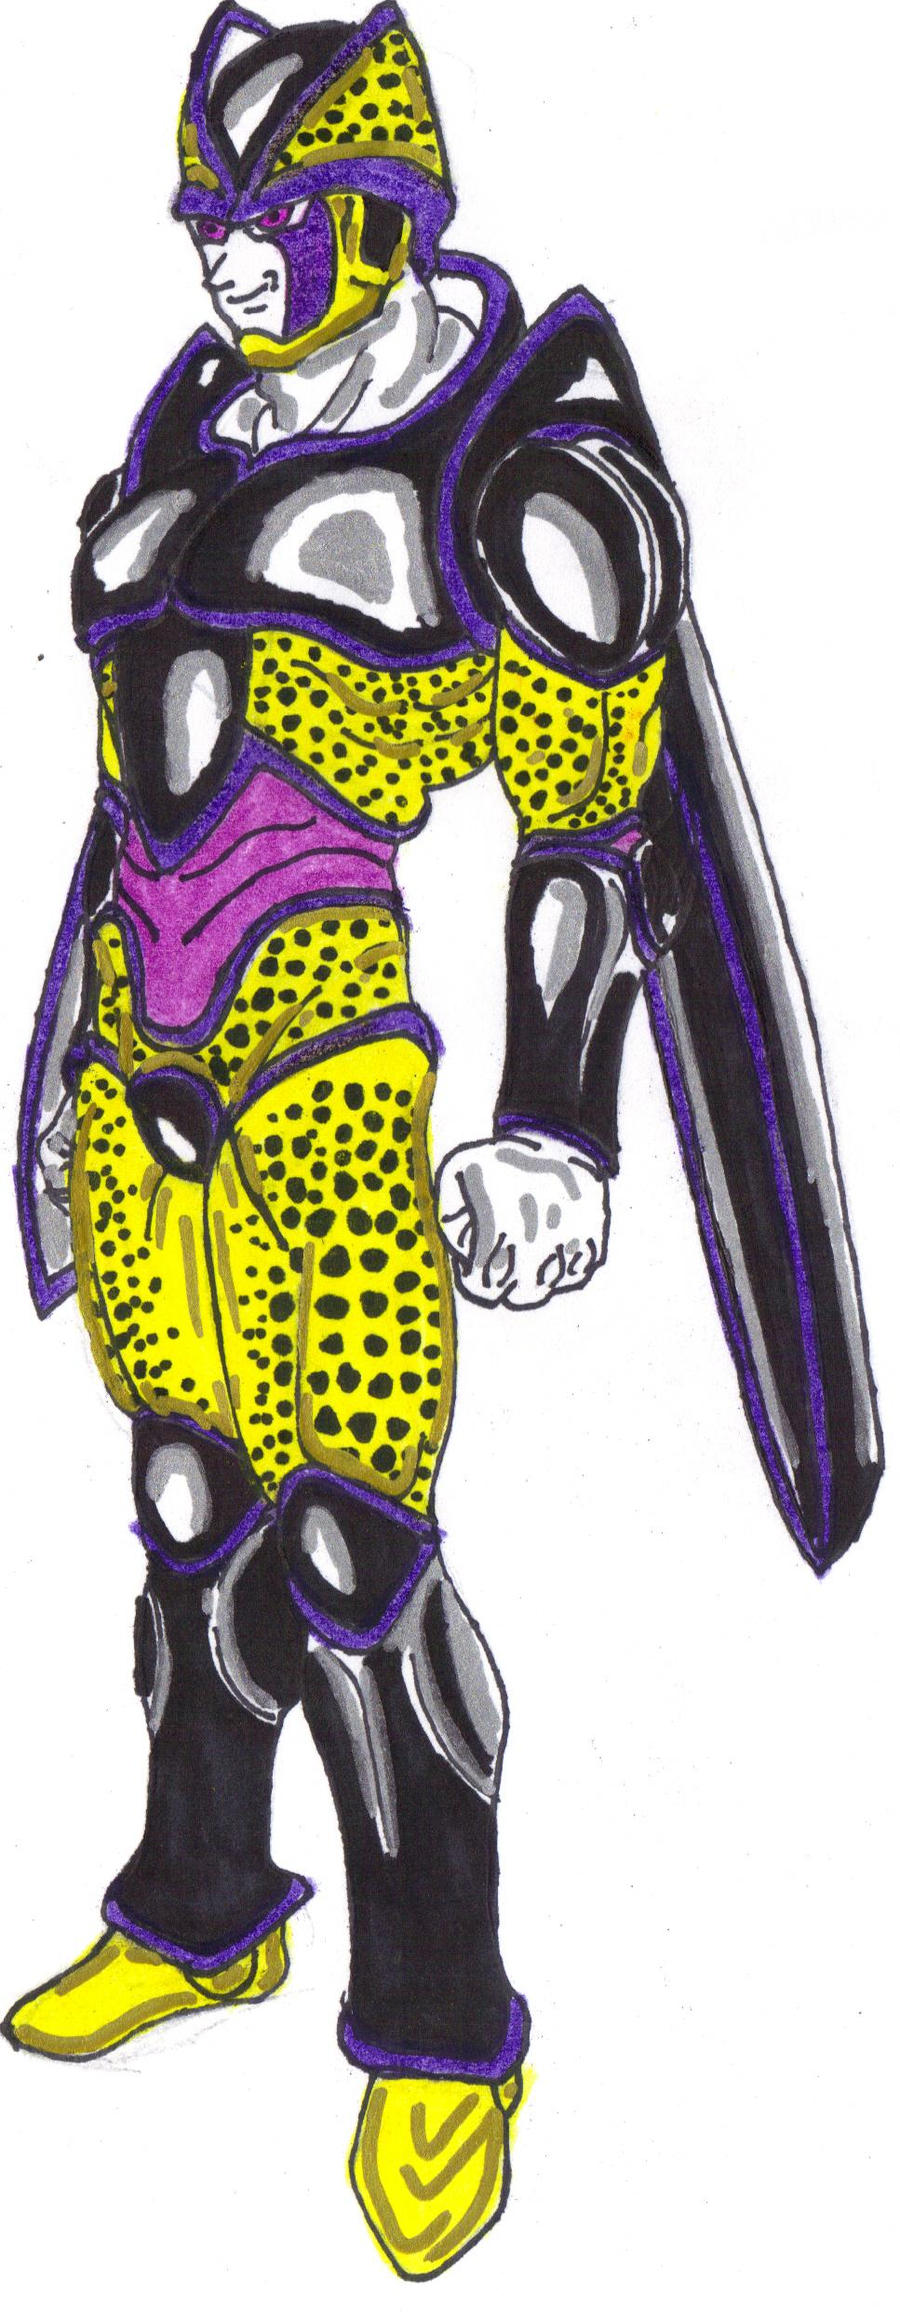 Perfect Cell's Final Form by DBZ2010 on DeviantArt